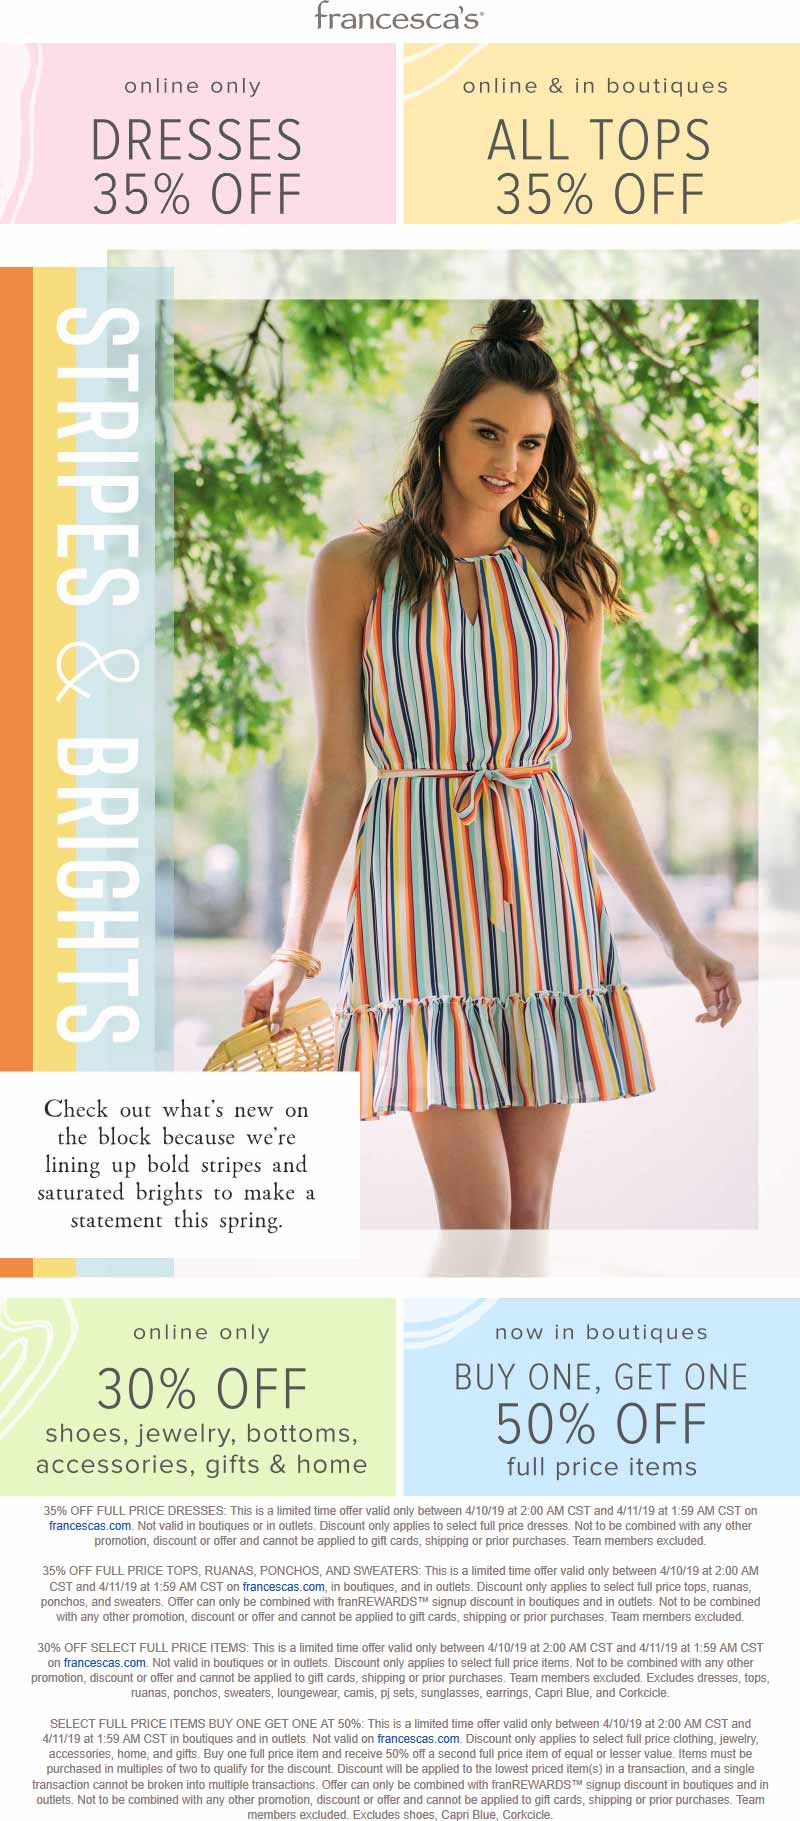 Francescas Coupon July 2020 Tops are 35% off at Francescas, ditto online